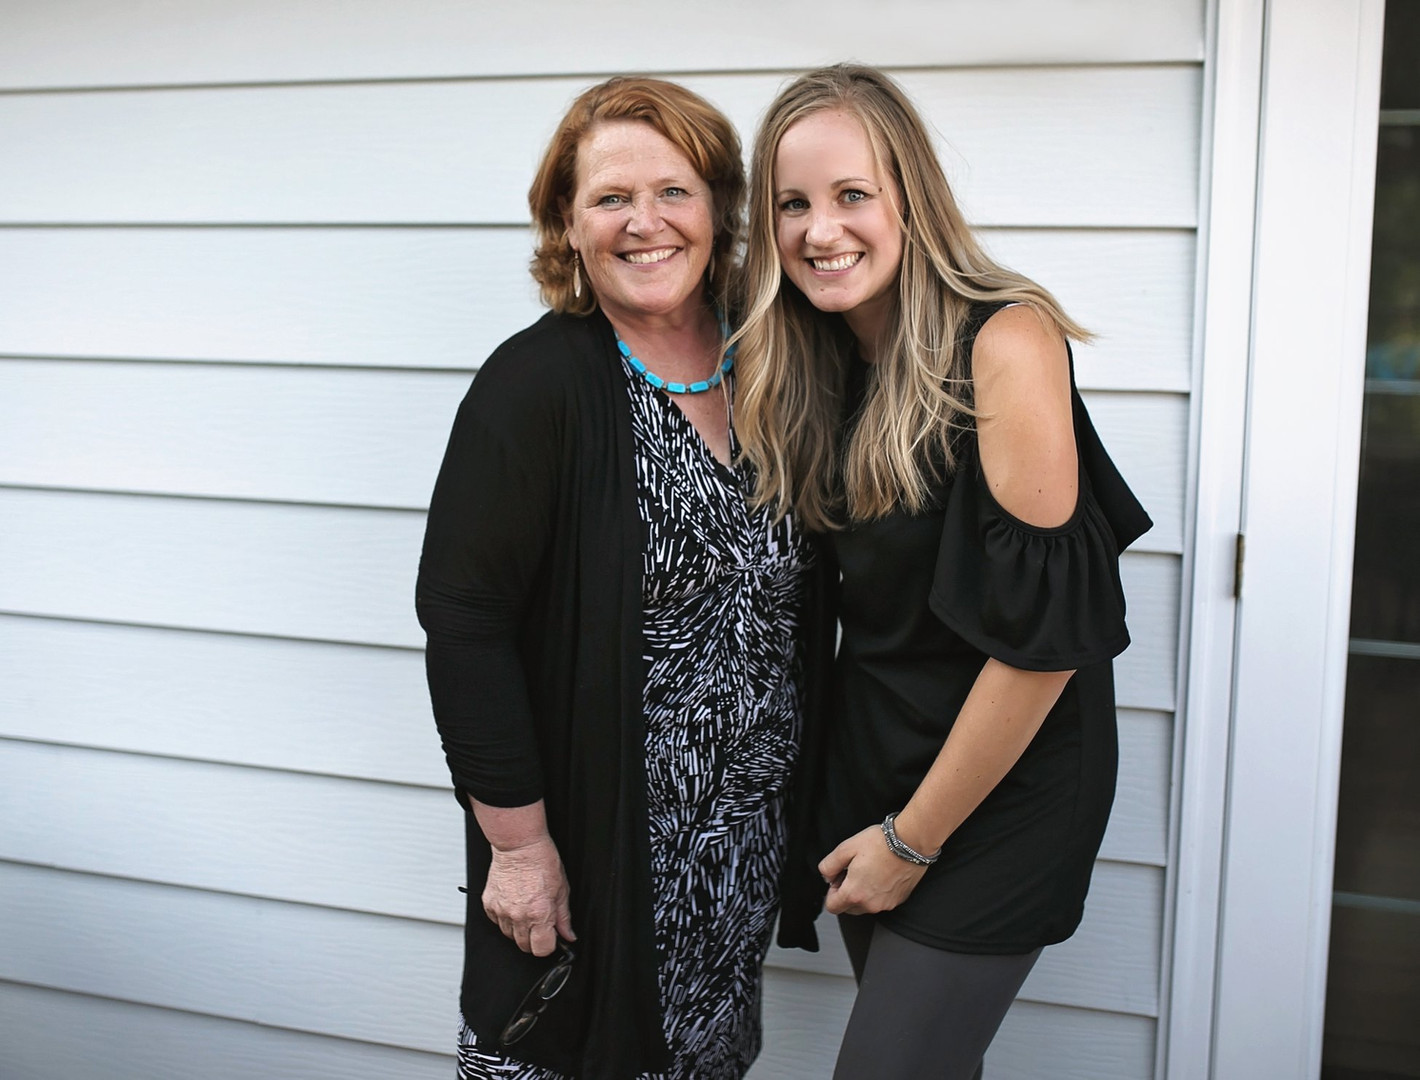 Kari with Heidi Heitkamp in 2018